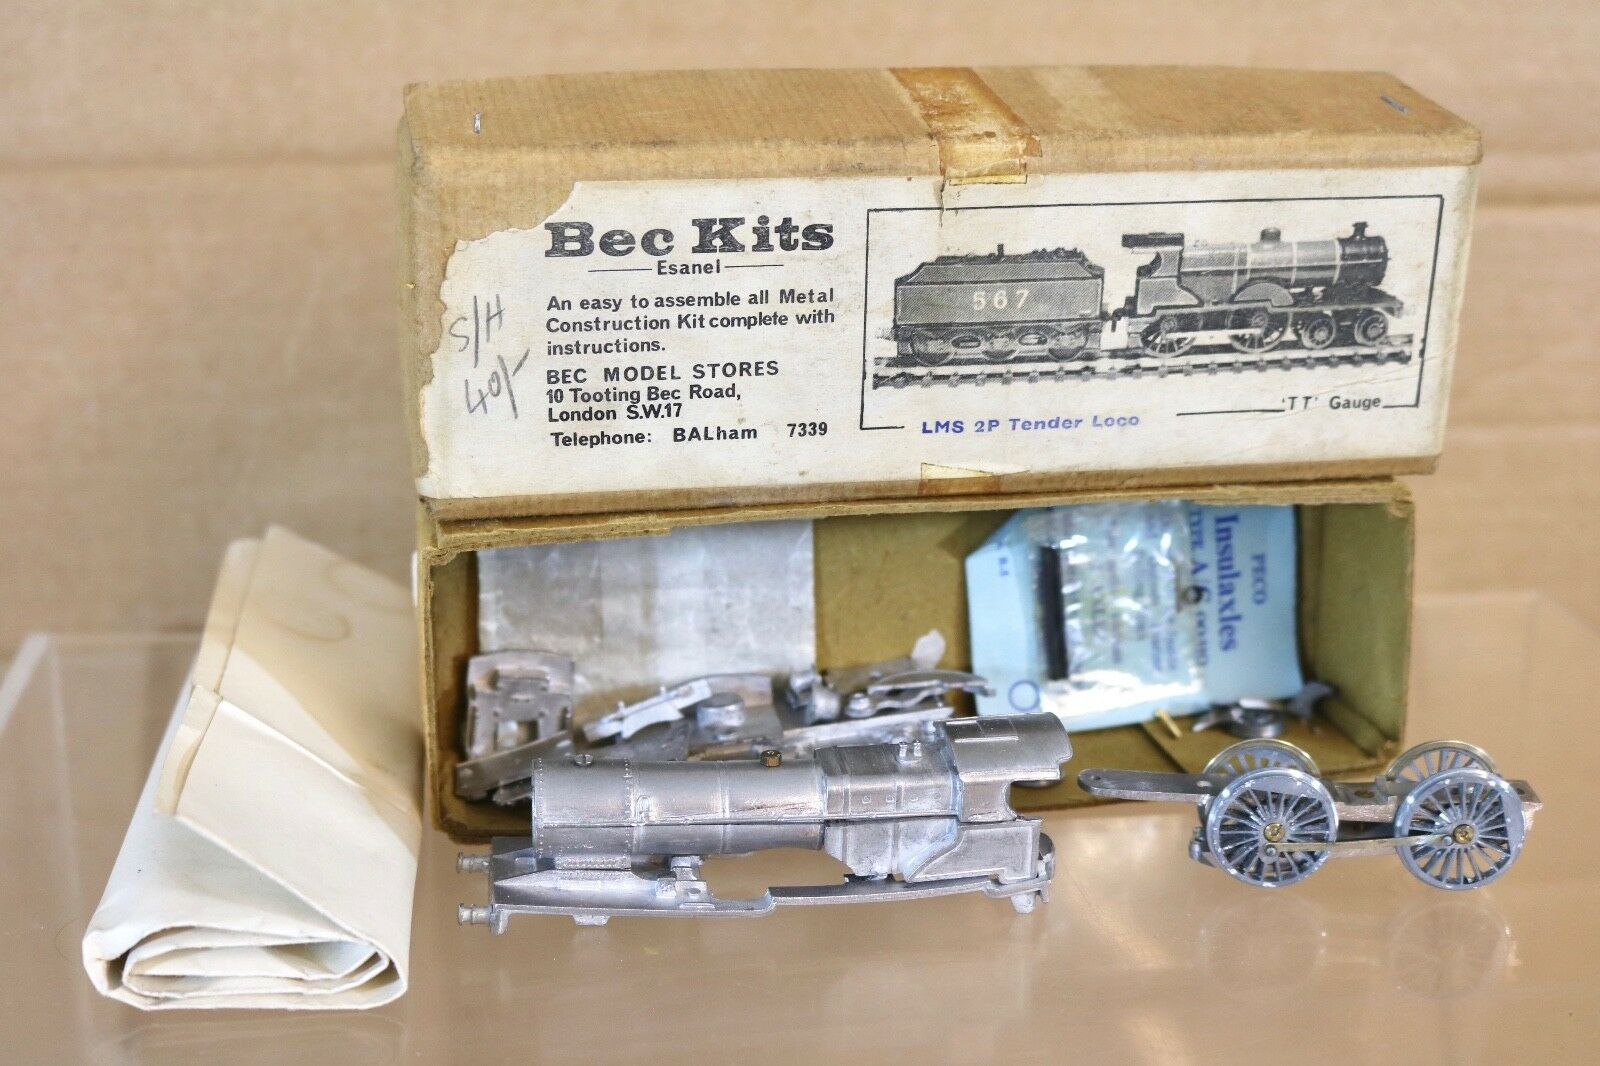 BEC KITS TT GAUGE KIT BUILT LMS 4-4-0 CLASS 2P LOCOMOTIVE & TENDER PART BUILT